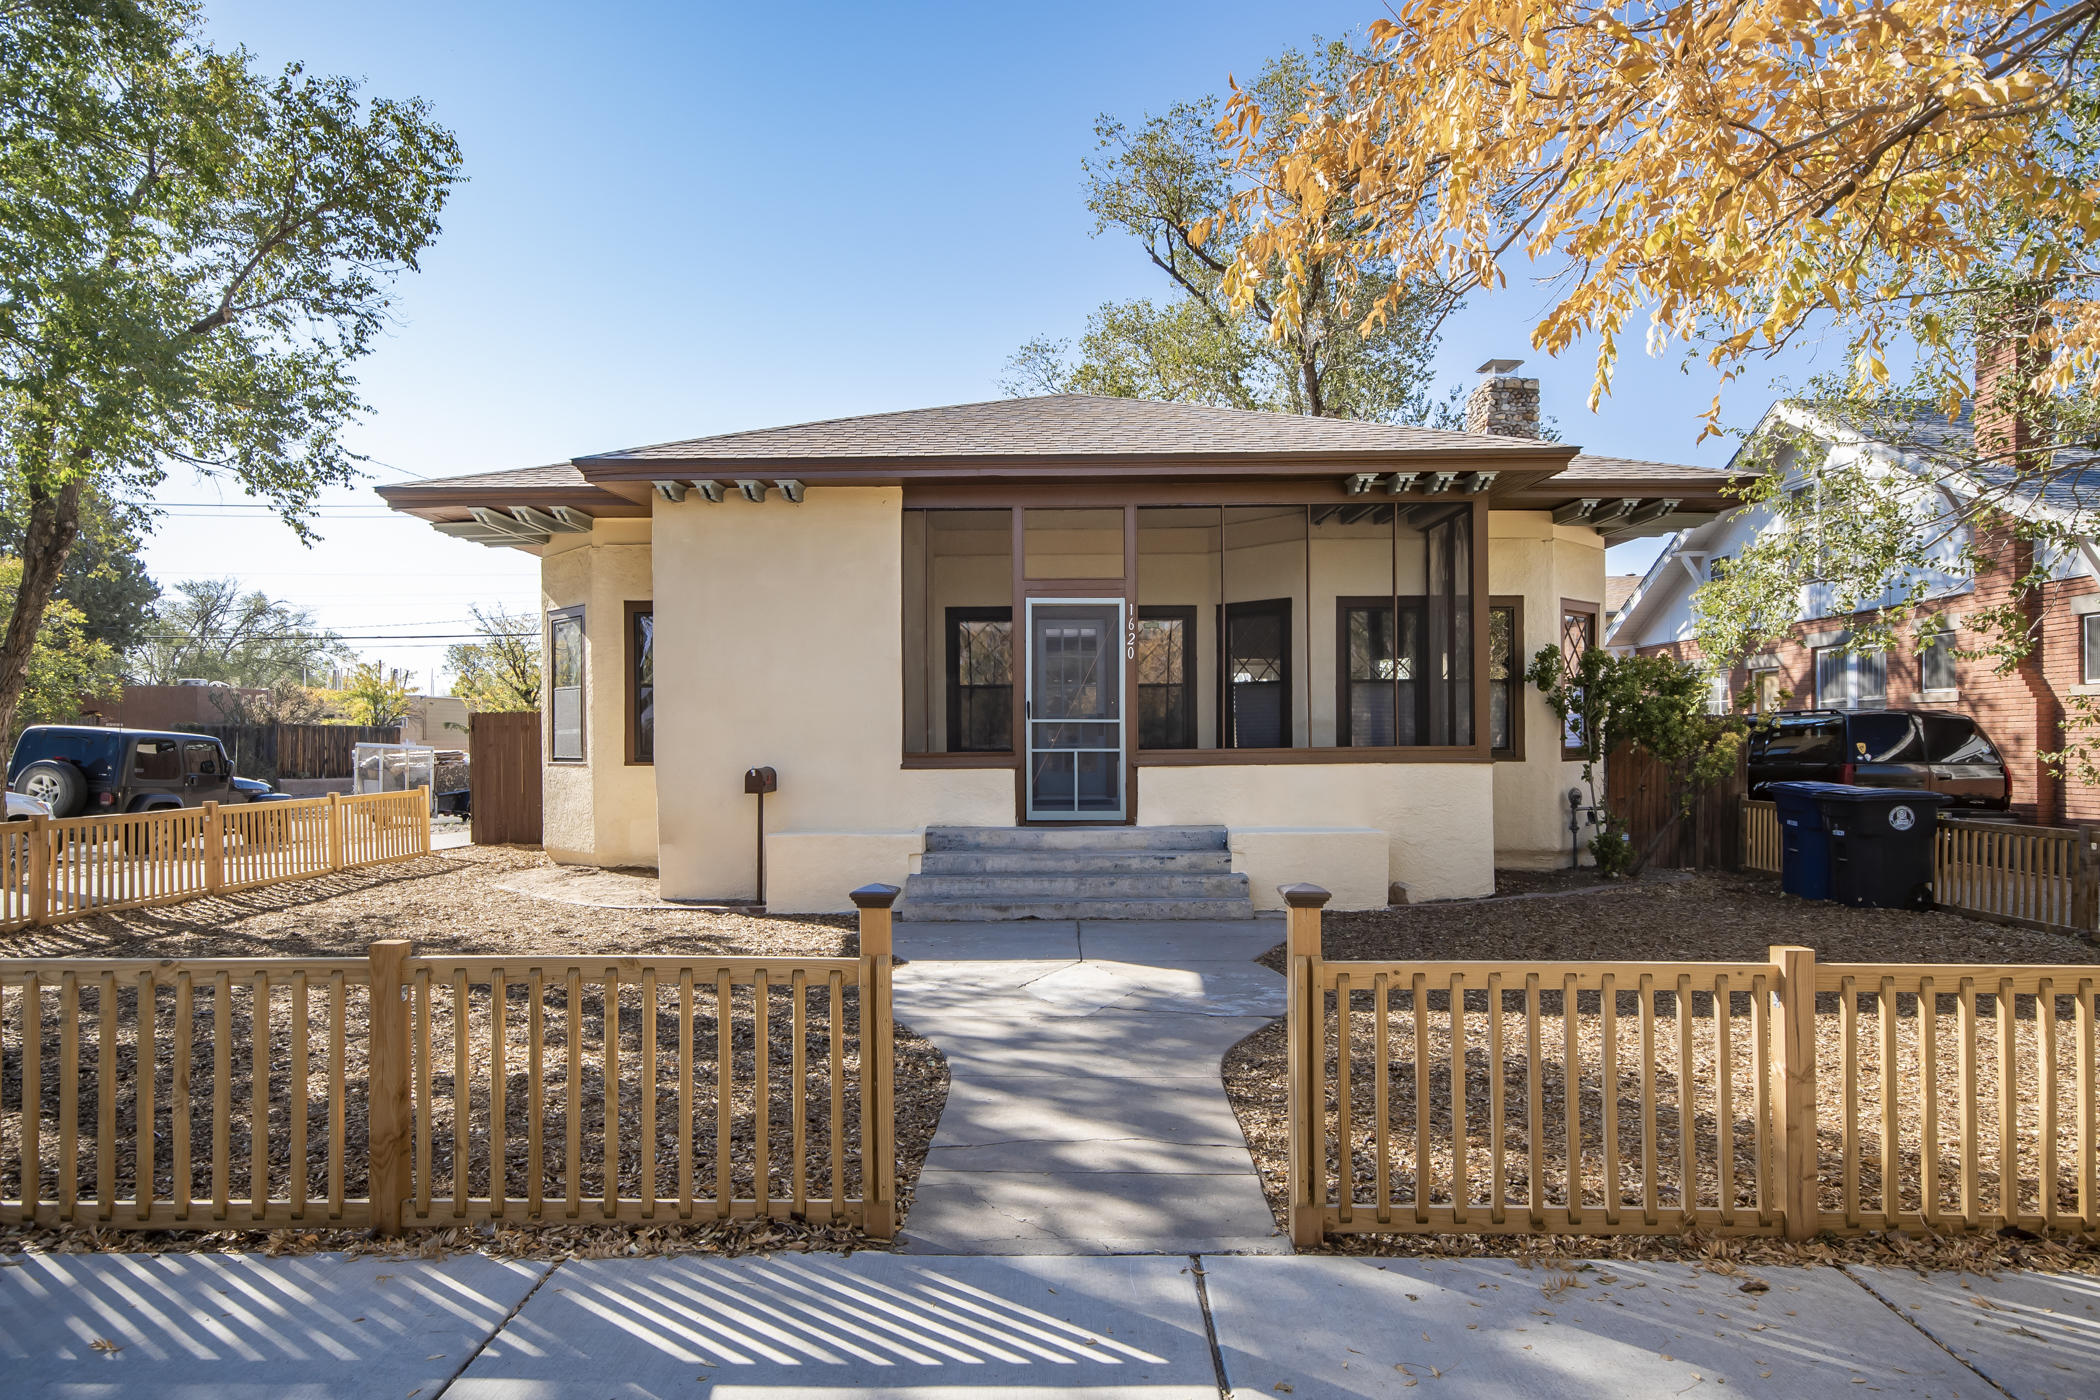 You won't find a better walking score in the city!  Steps to UNM, 3 hospitals, restaurants and ART++.  This plaqued home is on Silver SE; aka, Bicycle Boulevard, the city's only dedicated bicycle roadway with bike access to Nob Hill/Downtown.  This 1920's Sears, Roebuck Cottage ''kit-home'' has been restored and updated. The 3 BR, 3 BA home boasts: NEW kitchen, master bathroom, flooring, roof, storm windows, heating, refrigerated air, electrical service, plumbing, lighting, ++.   Original ten foot ceilings, rolled glass windows (15) and river stone fireplace anchor the great room. Bright, large lower level with 3/4 bath.  New back patio, xeriscaping, fully fenced yard with 2 car garage!